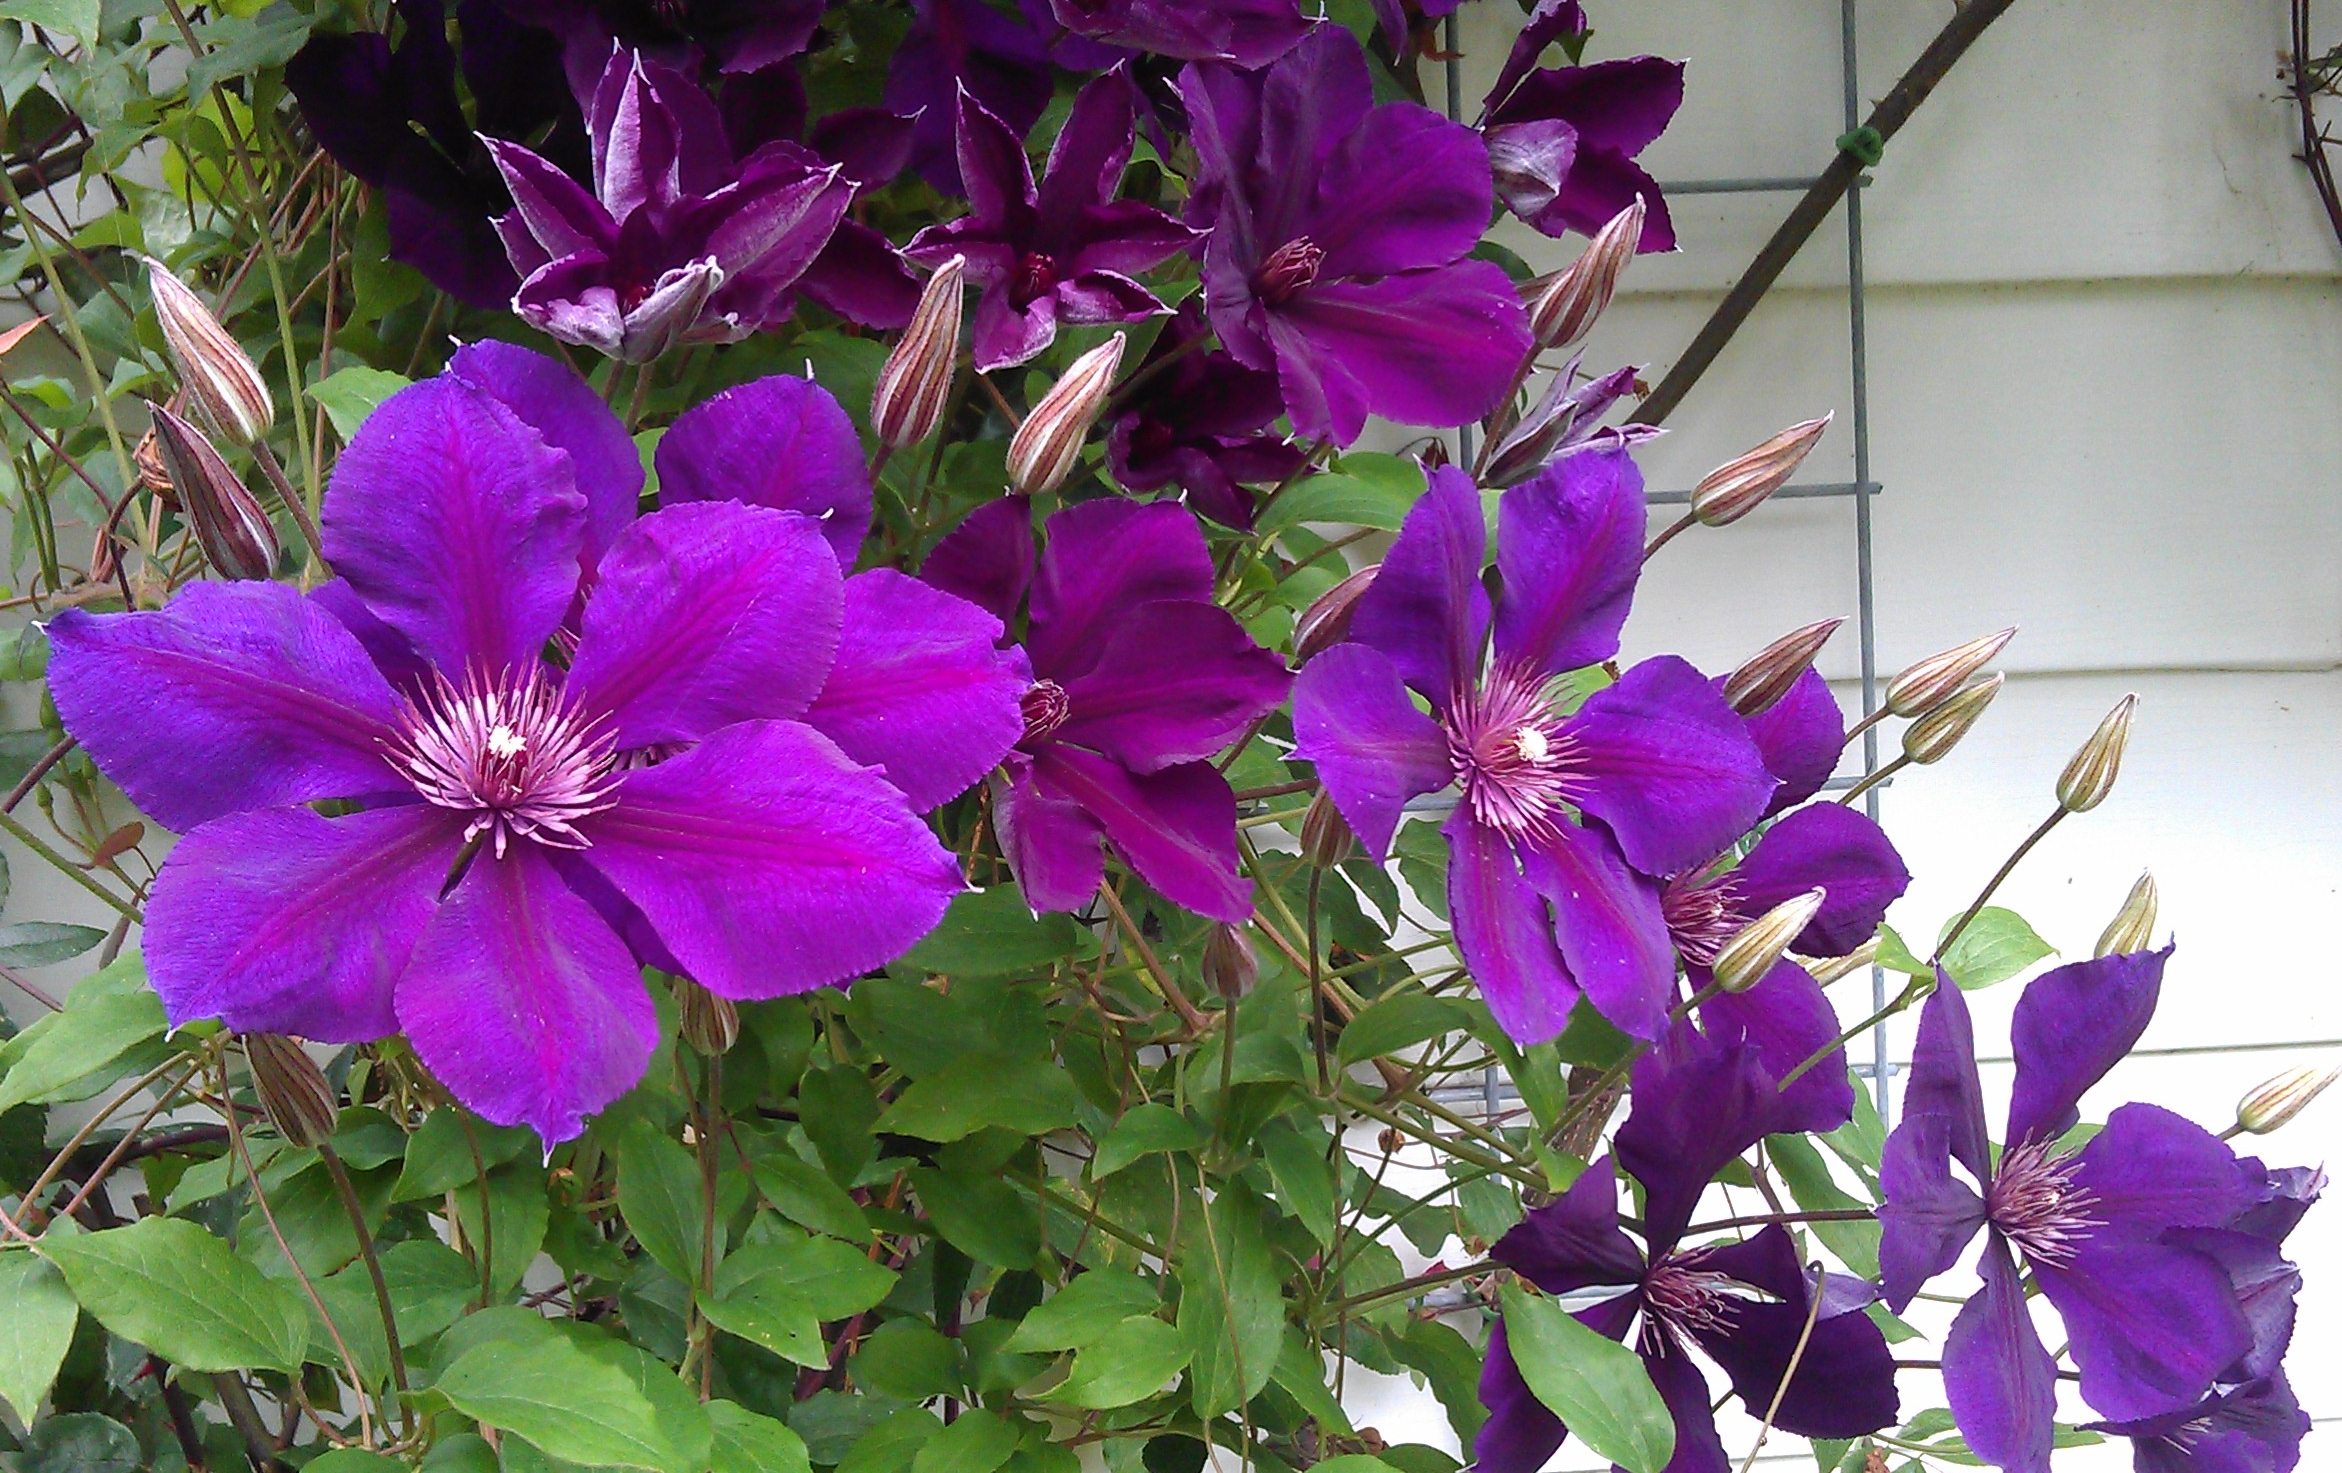 Clematis betty corning clematis in seattle - Clematis viticella ...